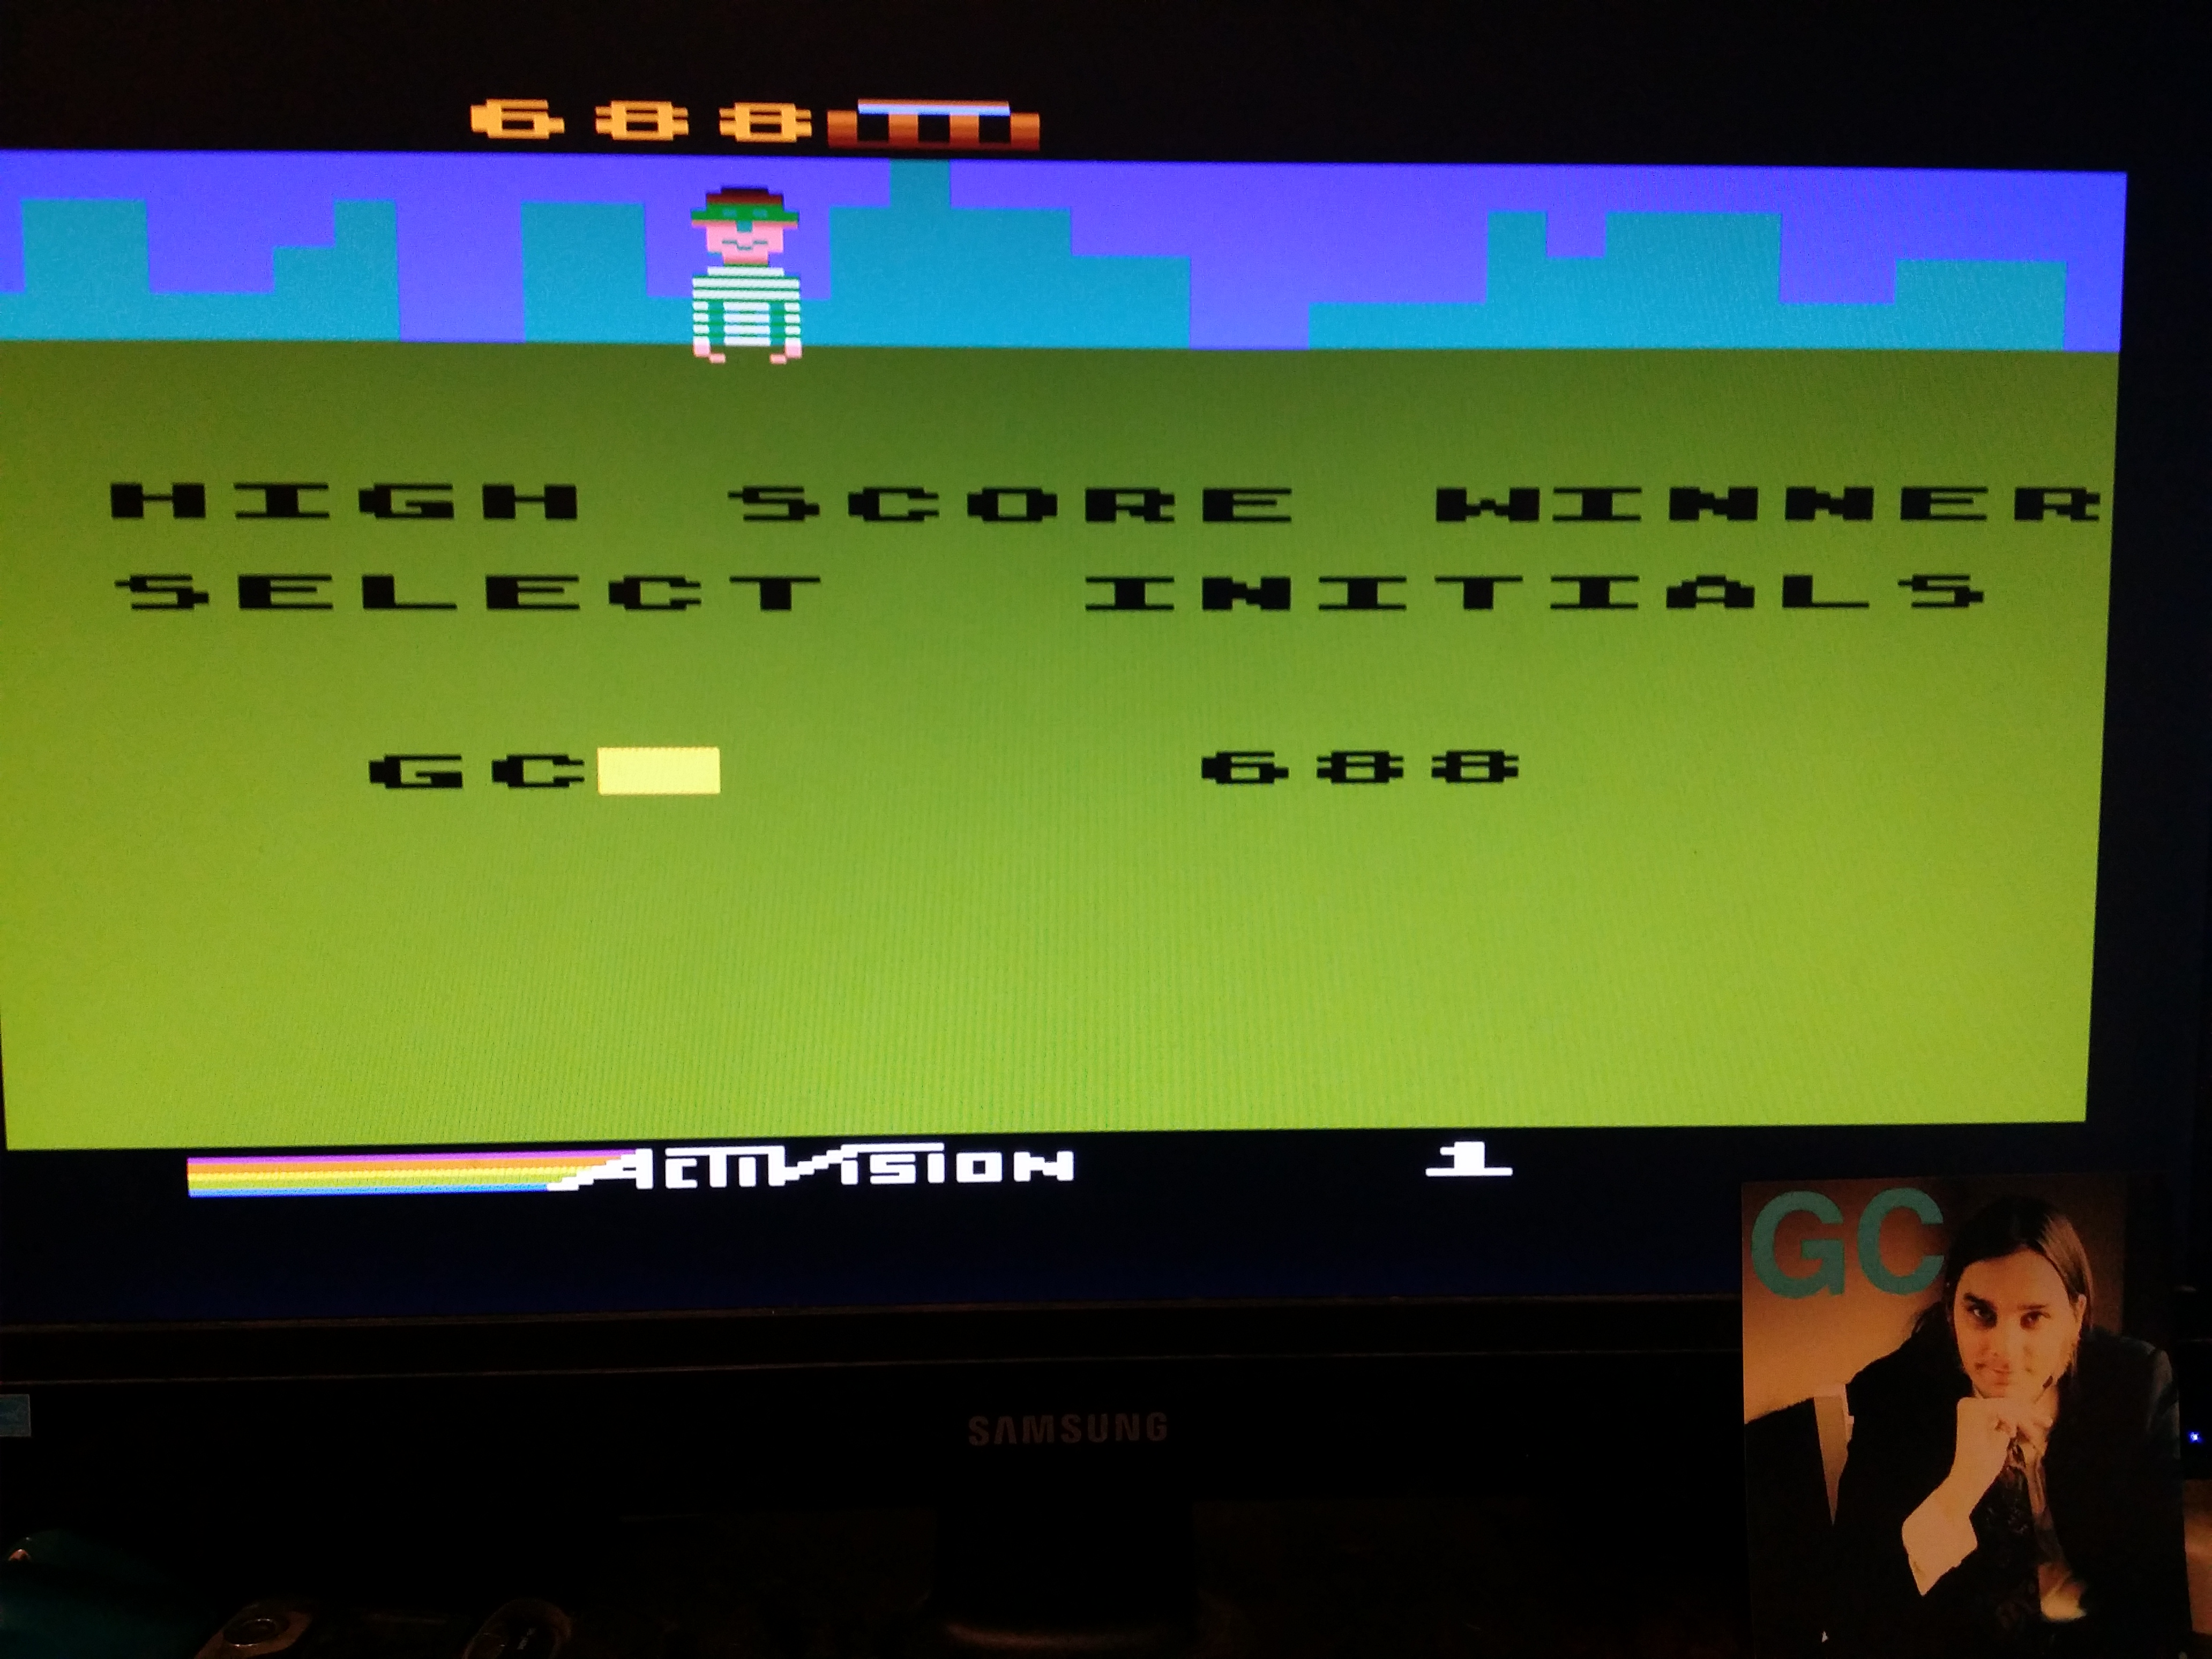 glenncase: Kaboom! (Atari 5200 Emulated) 688 points on 2014-11-17 23:04:58